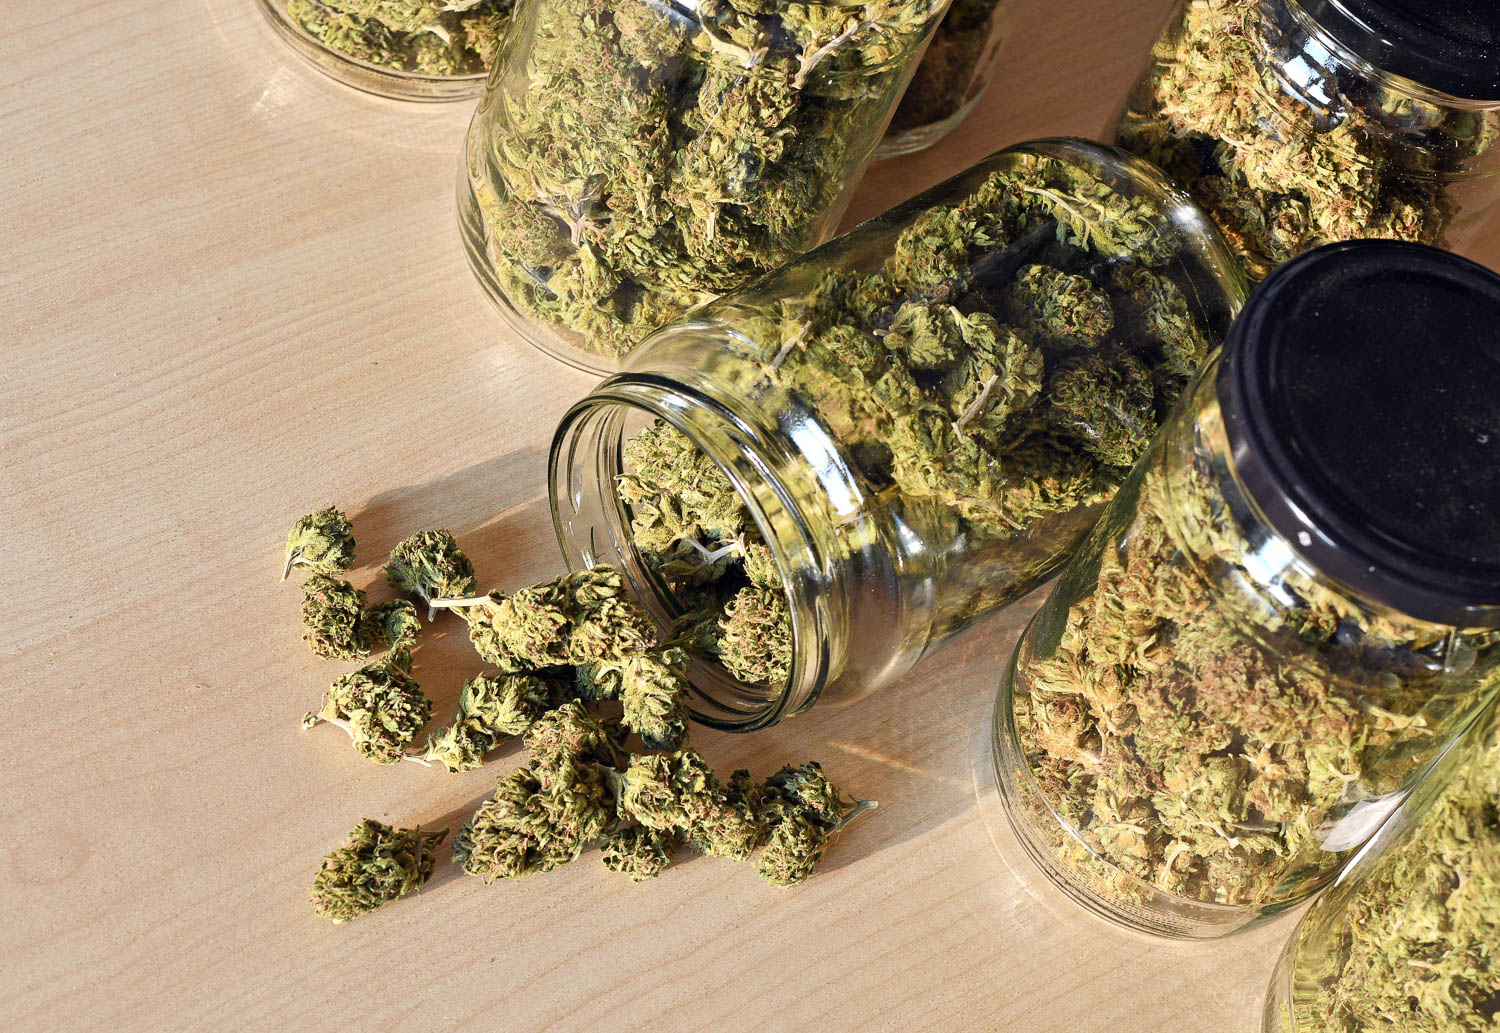 Dried Weed or Cannabis is in glass jars with lids, one jar is spilled out. Weed possession can be a felony in Florida